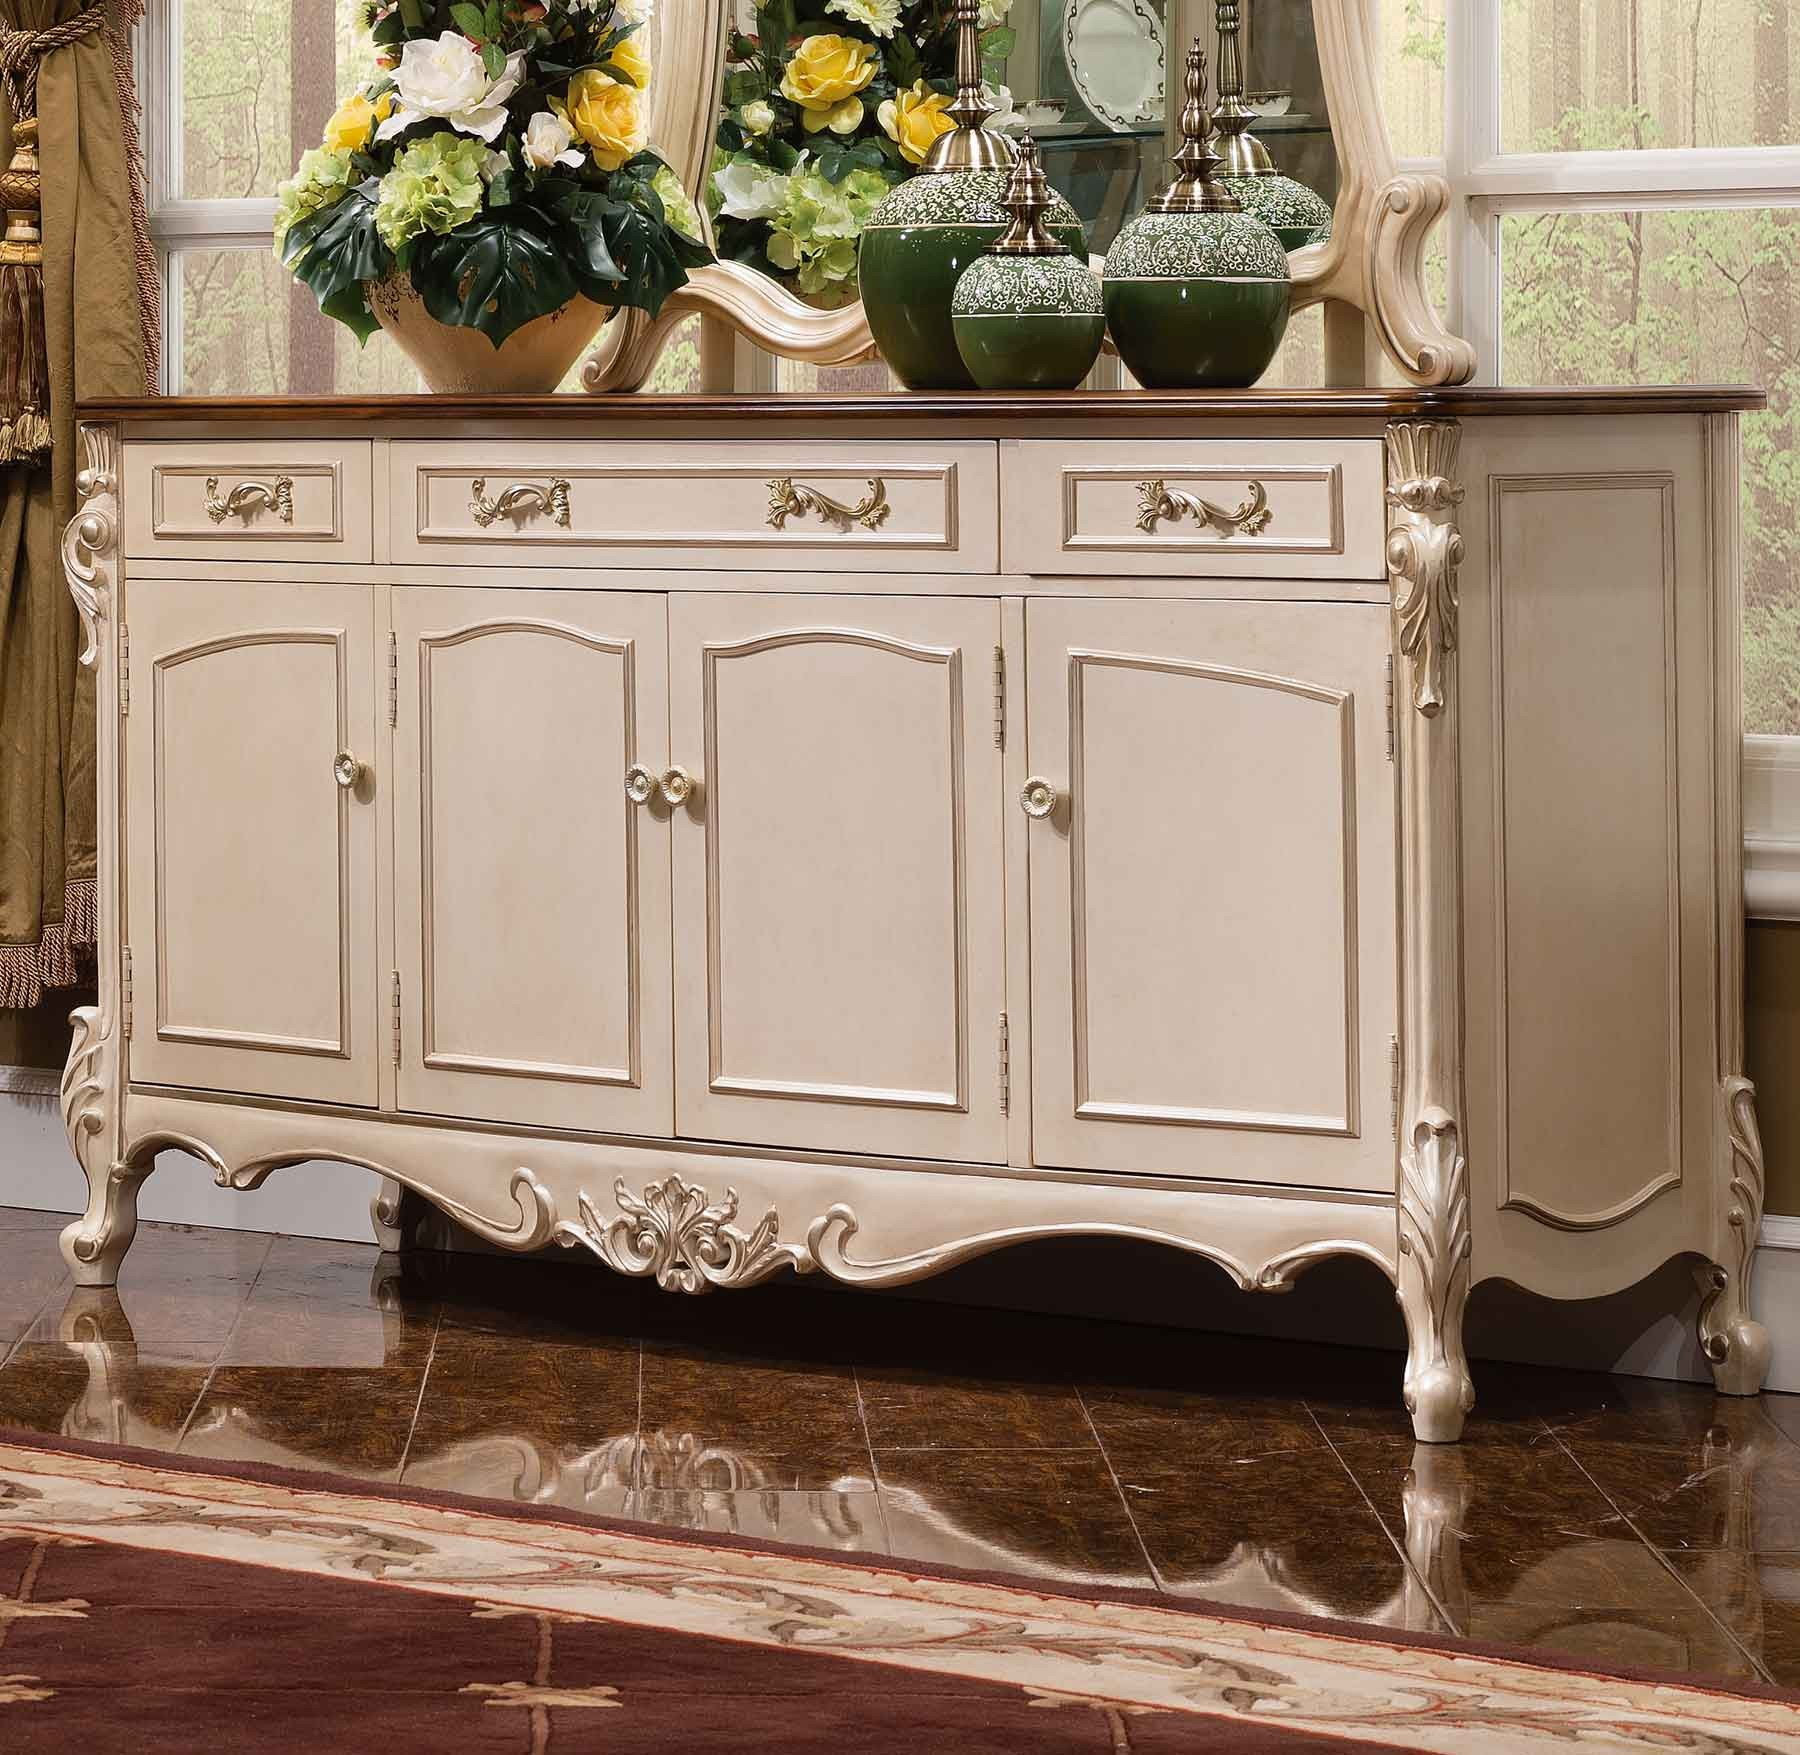 Prescott Credenza in Egyptian Pearl finish with Antique Cognac top.